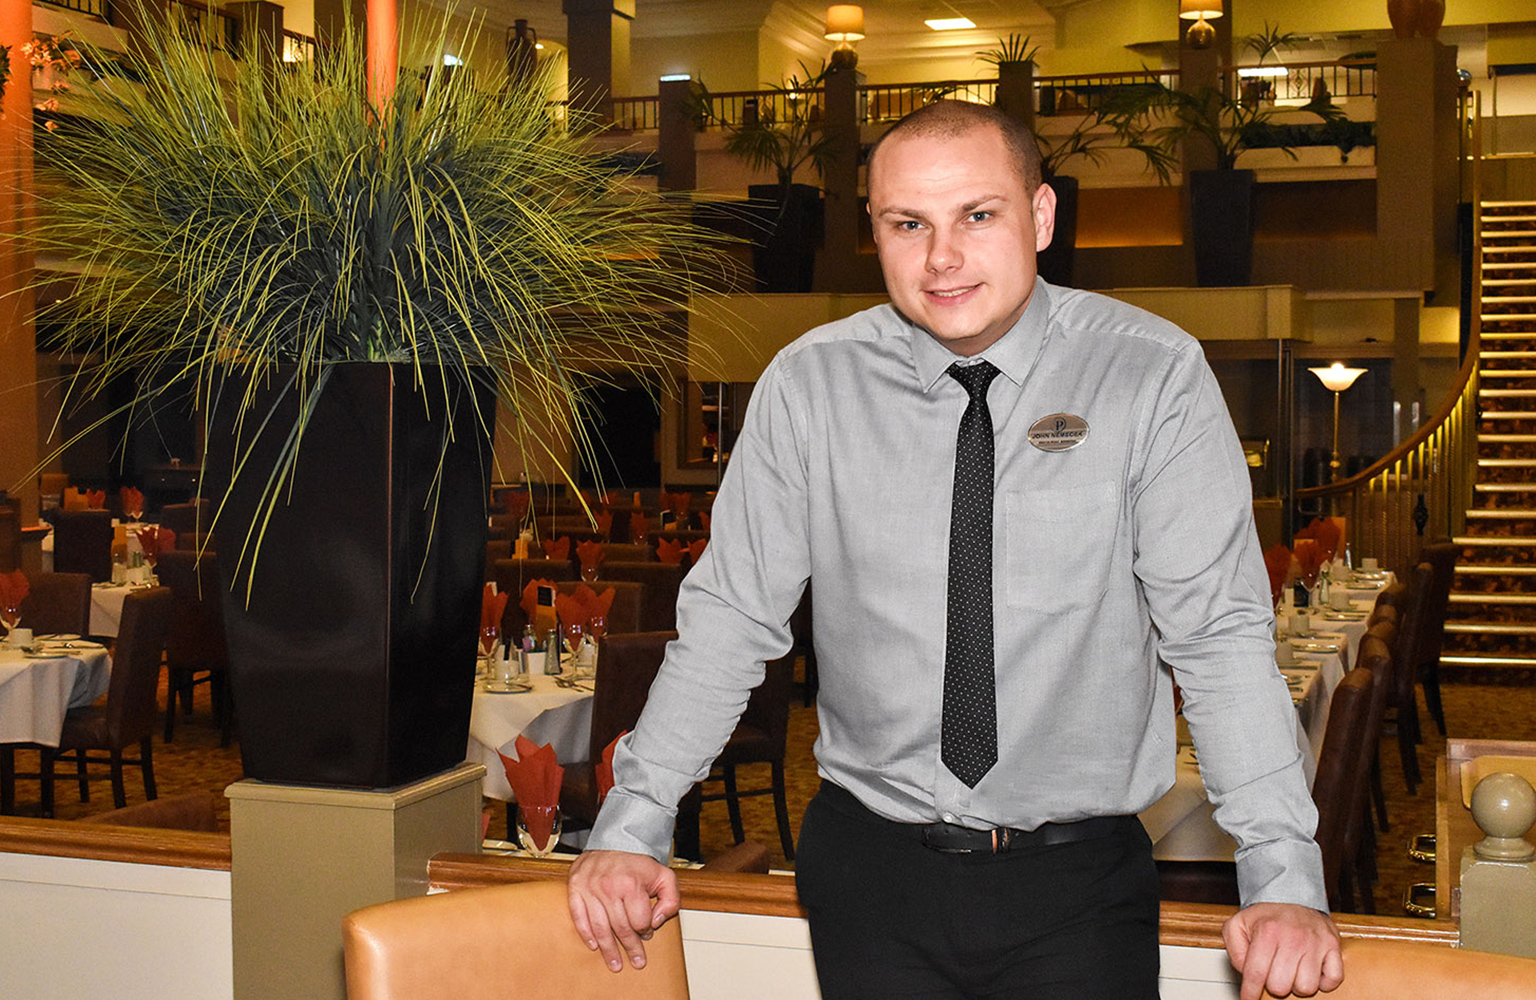 National Waiters Day: Meet Restaurant Manager John Nemecek